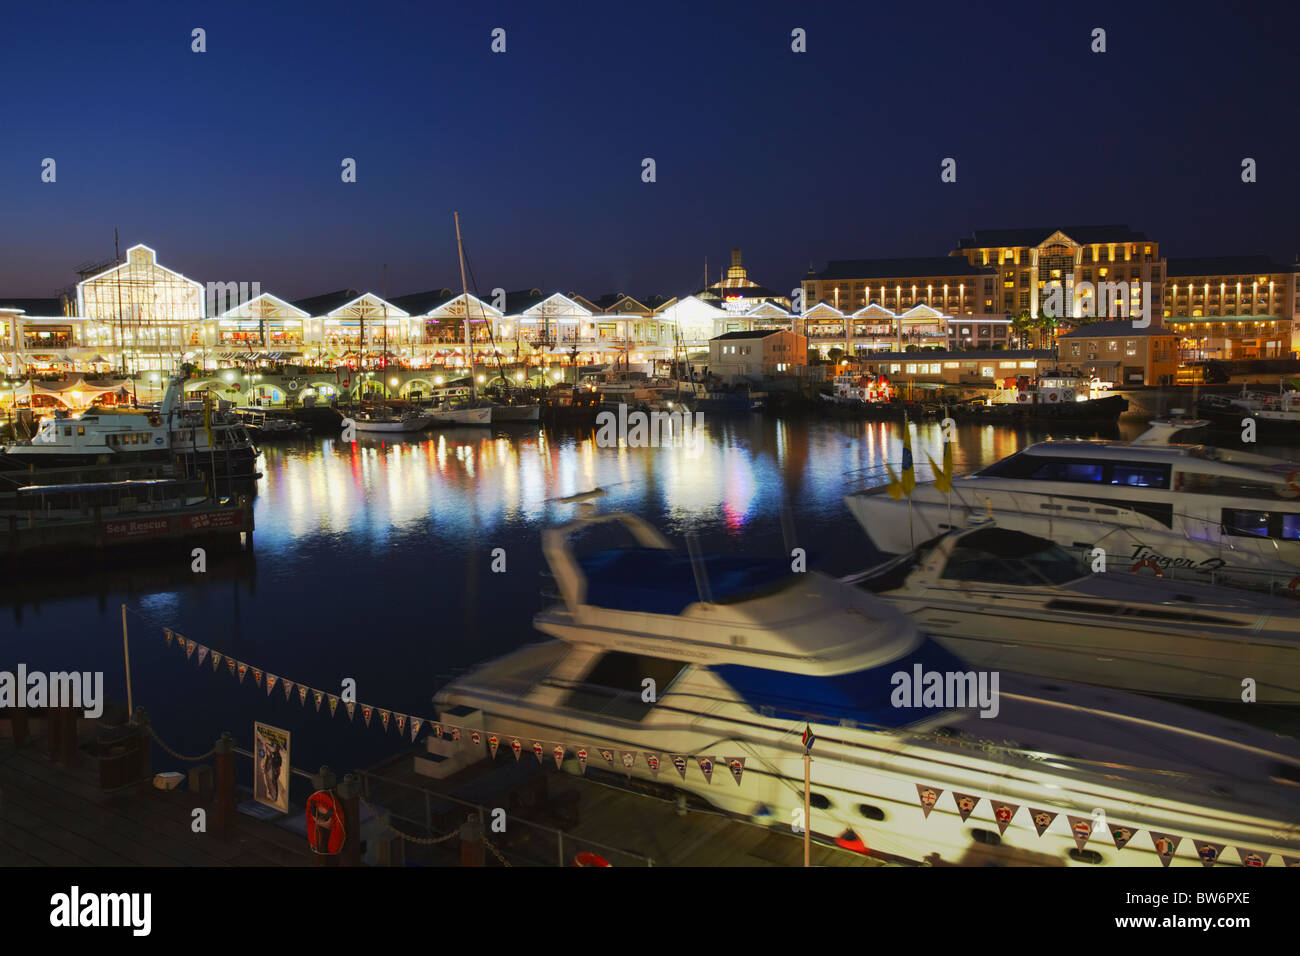 Victoria and Alfred Waterfront at dusk, Cape Town, Western Cape, South Africa - Stock Image